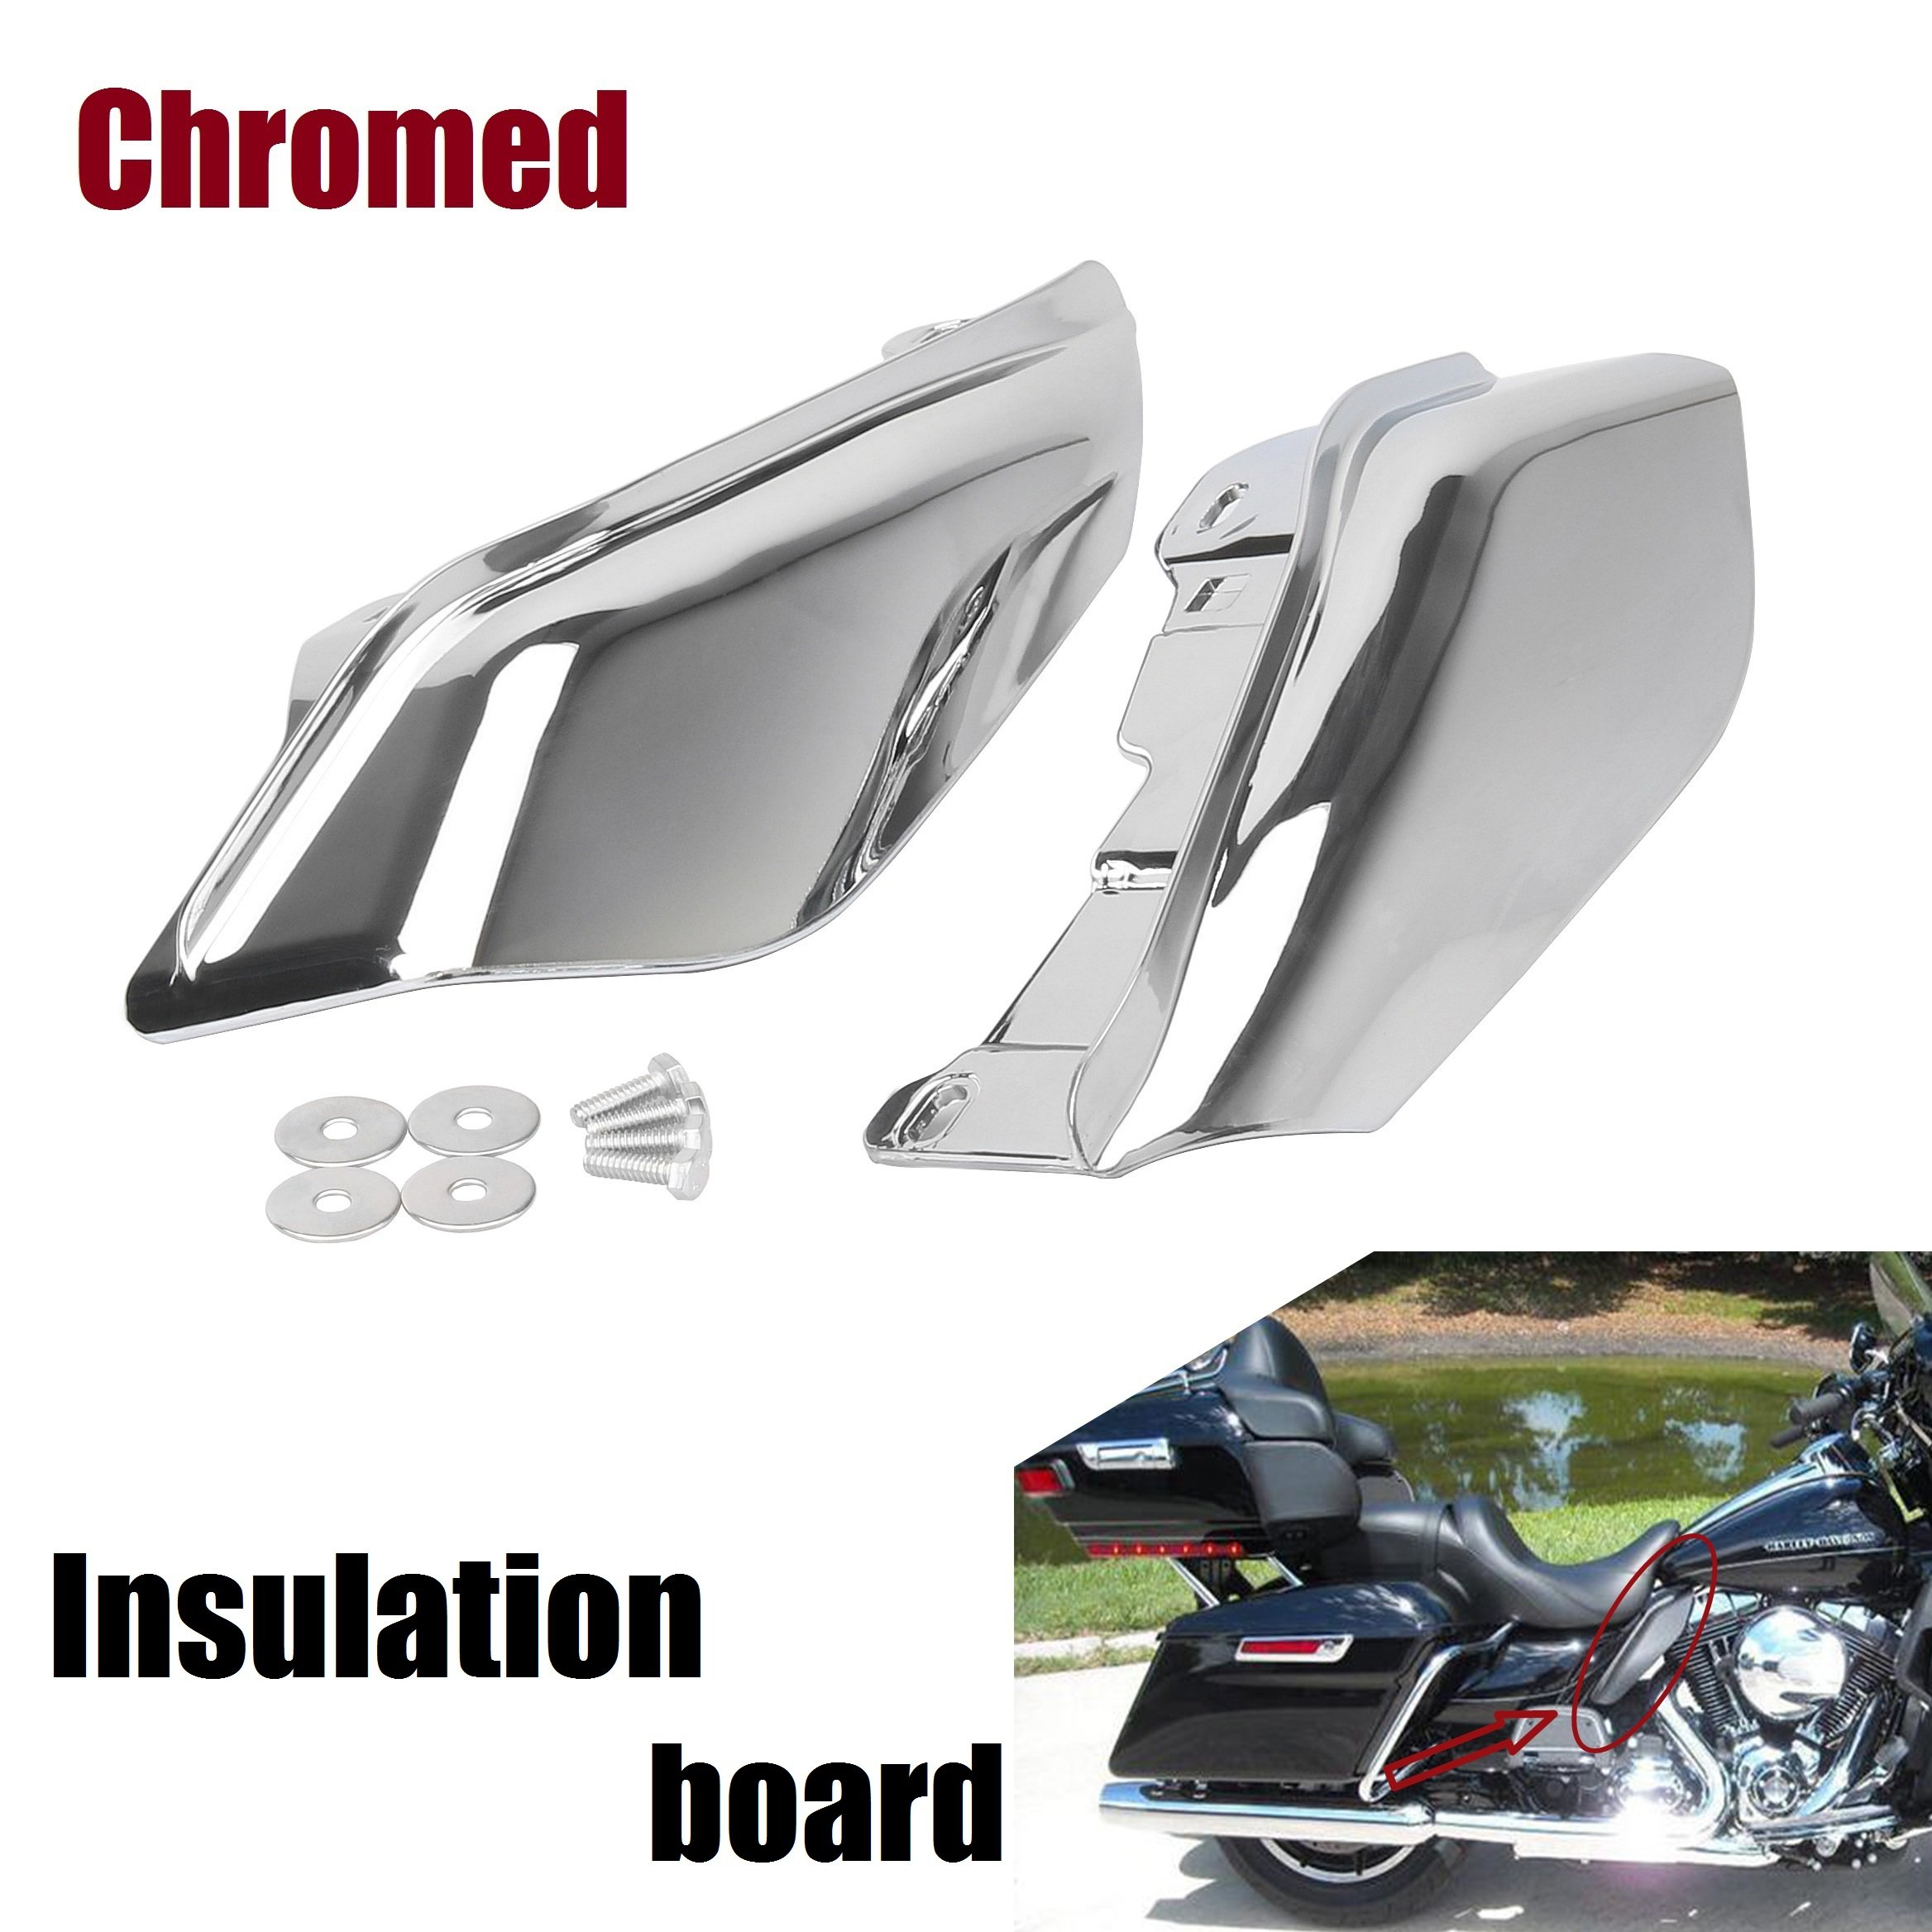 Motorcycle Chromed Mid-Frame harley deflector Air Deflector Touring Road King Electra Street Glide 09-Up